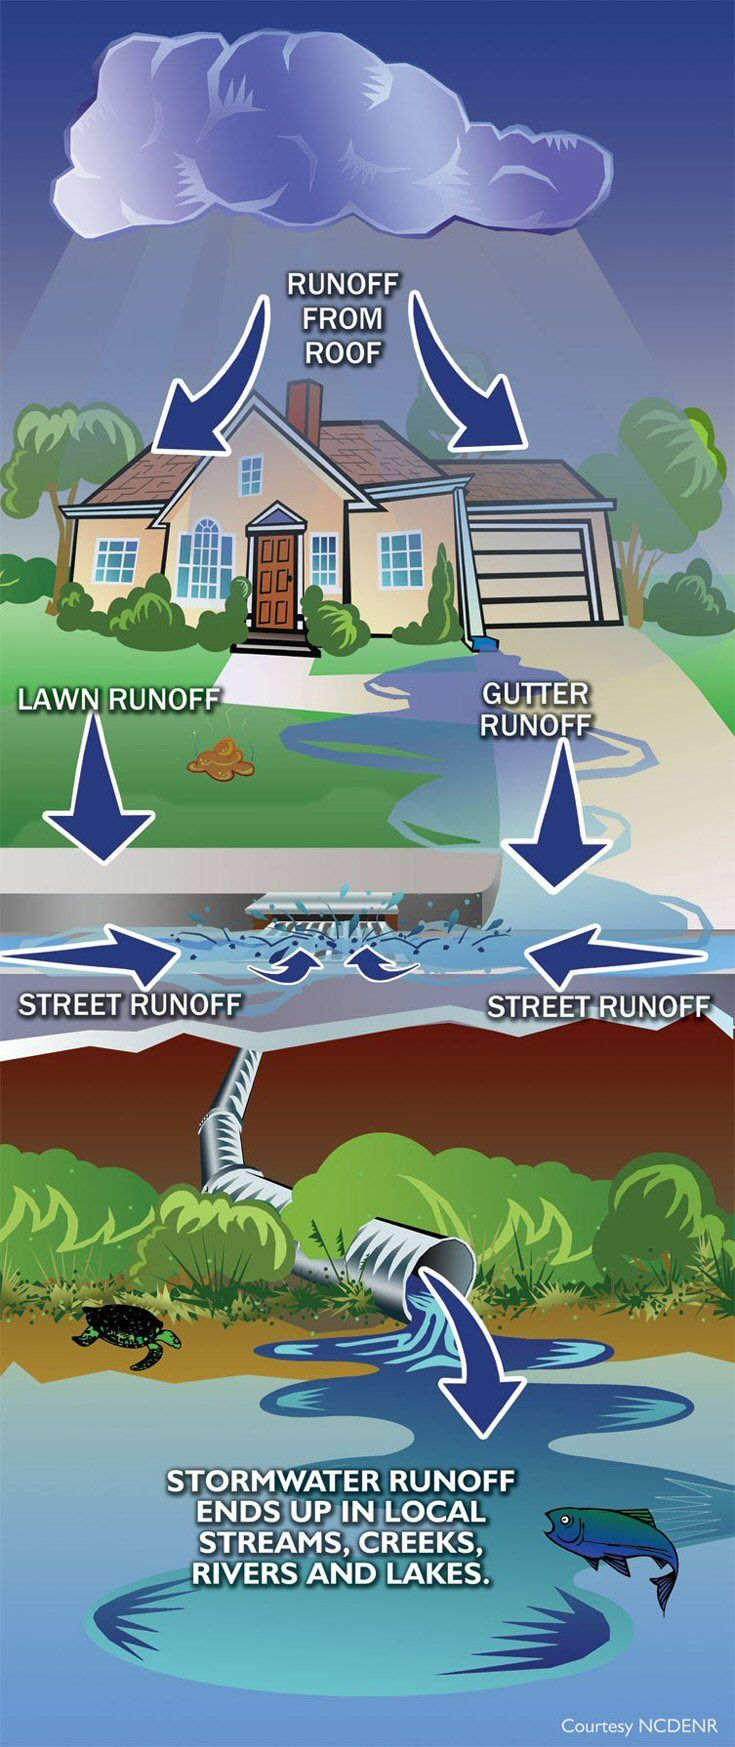 Stormwater Runoff Or Non Point Source Pollution Stormwater